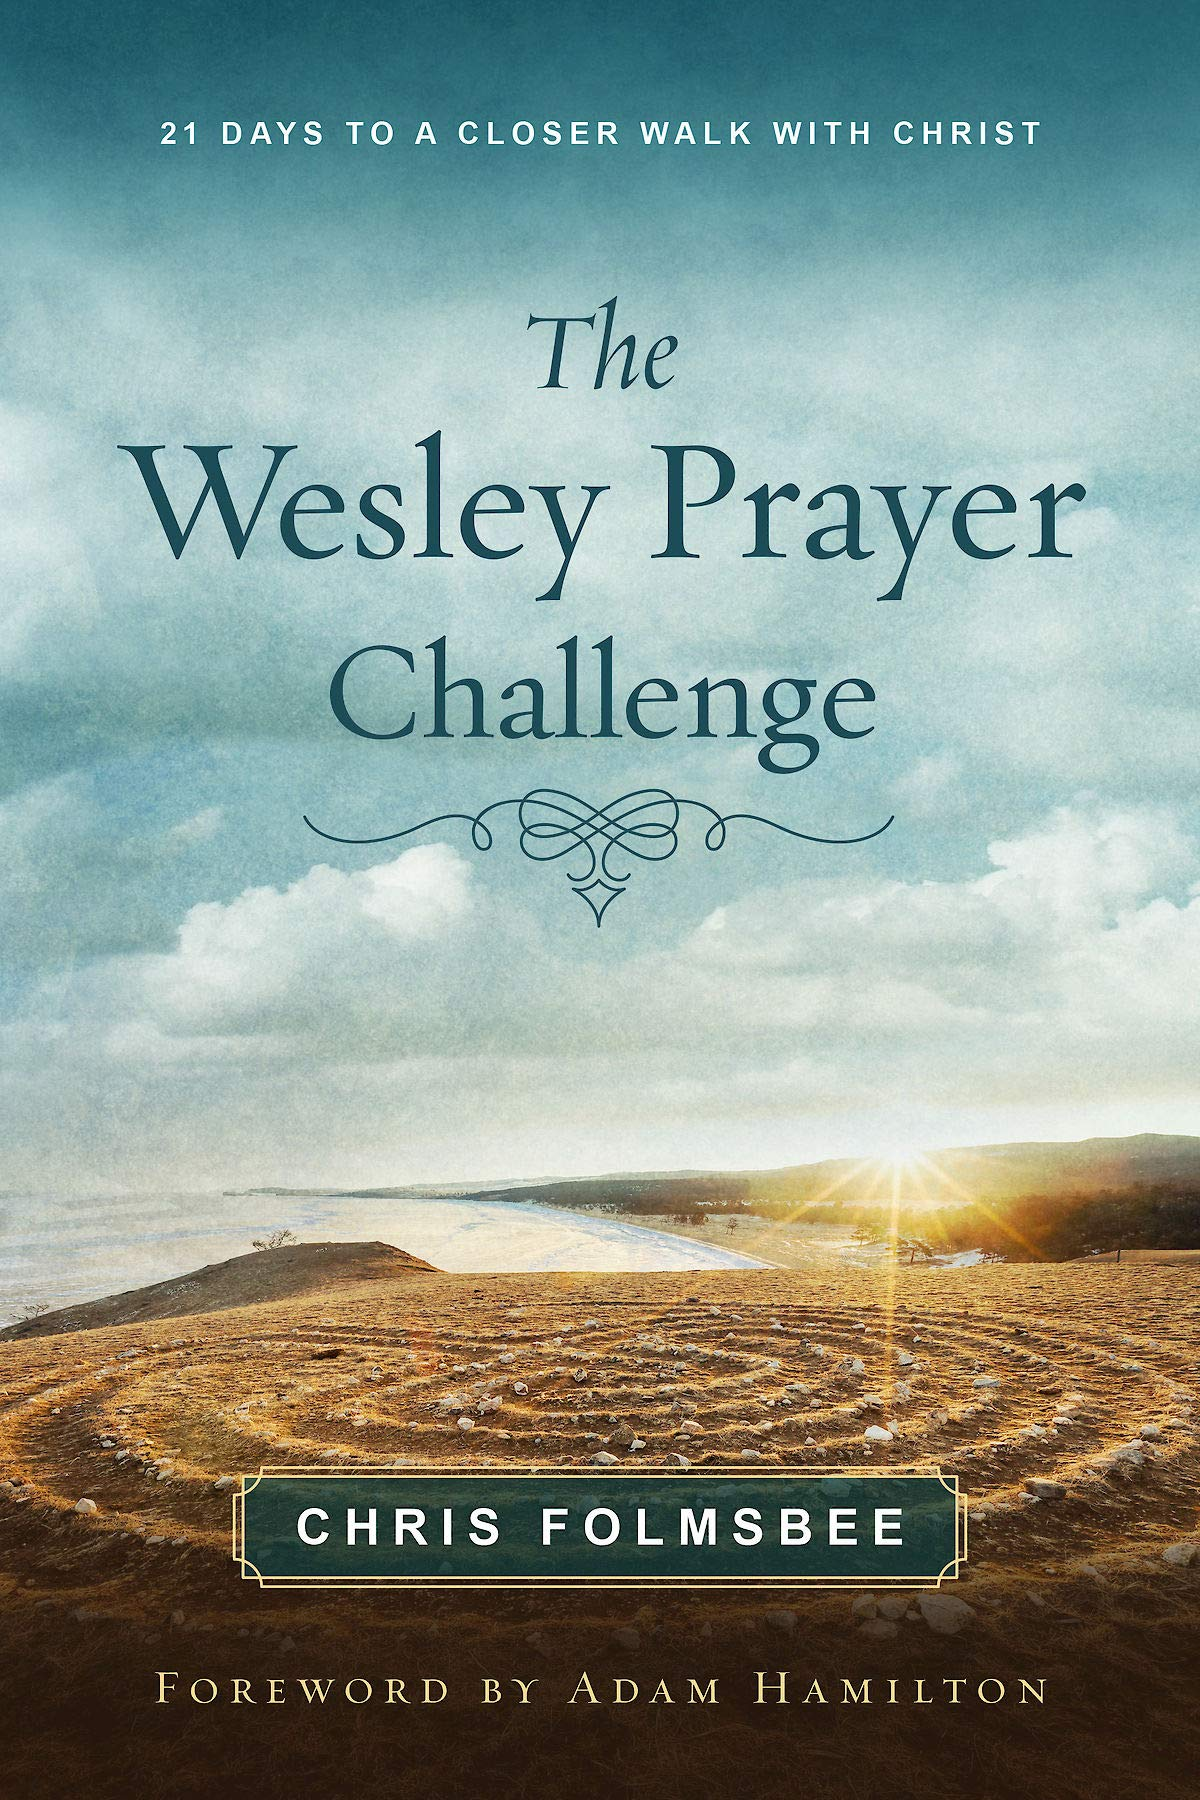 The Wesley Prayer Challenge Participant Book: 21 Days to a Closer Walk with Christ